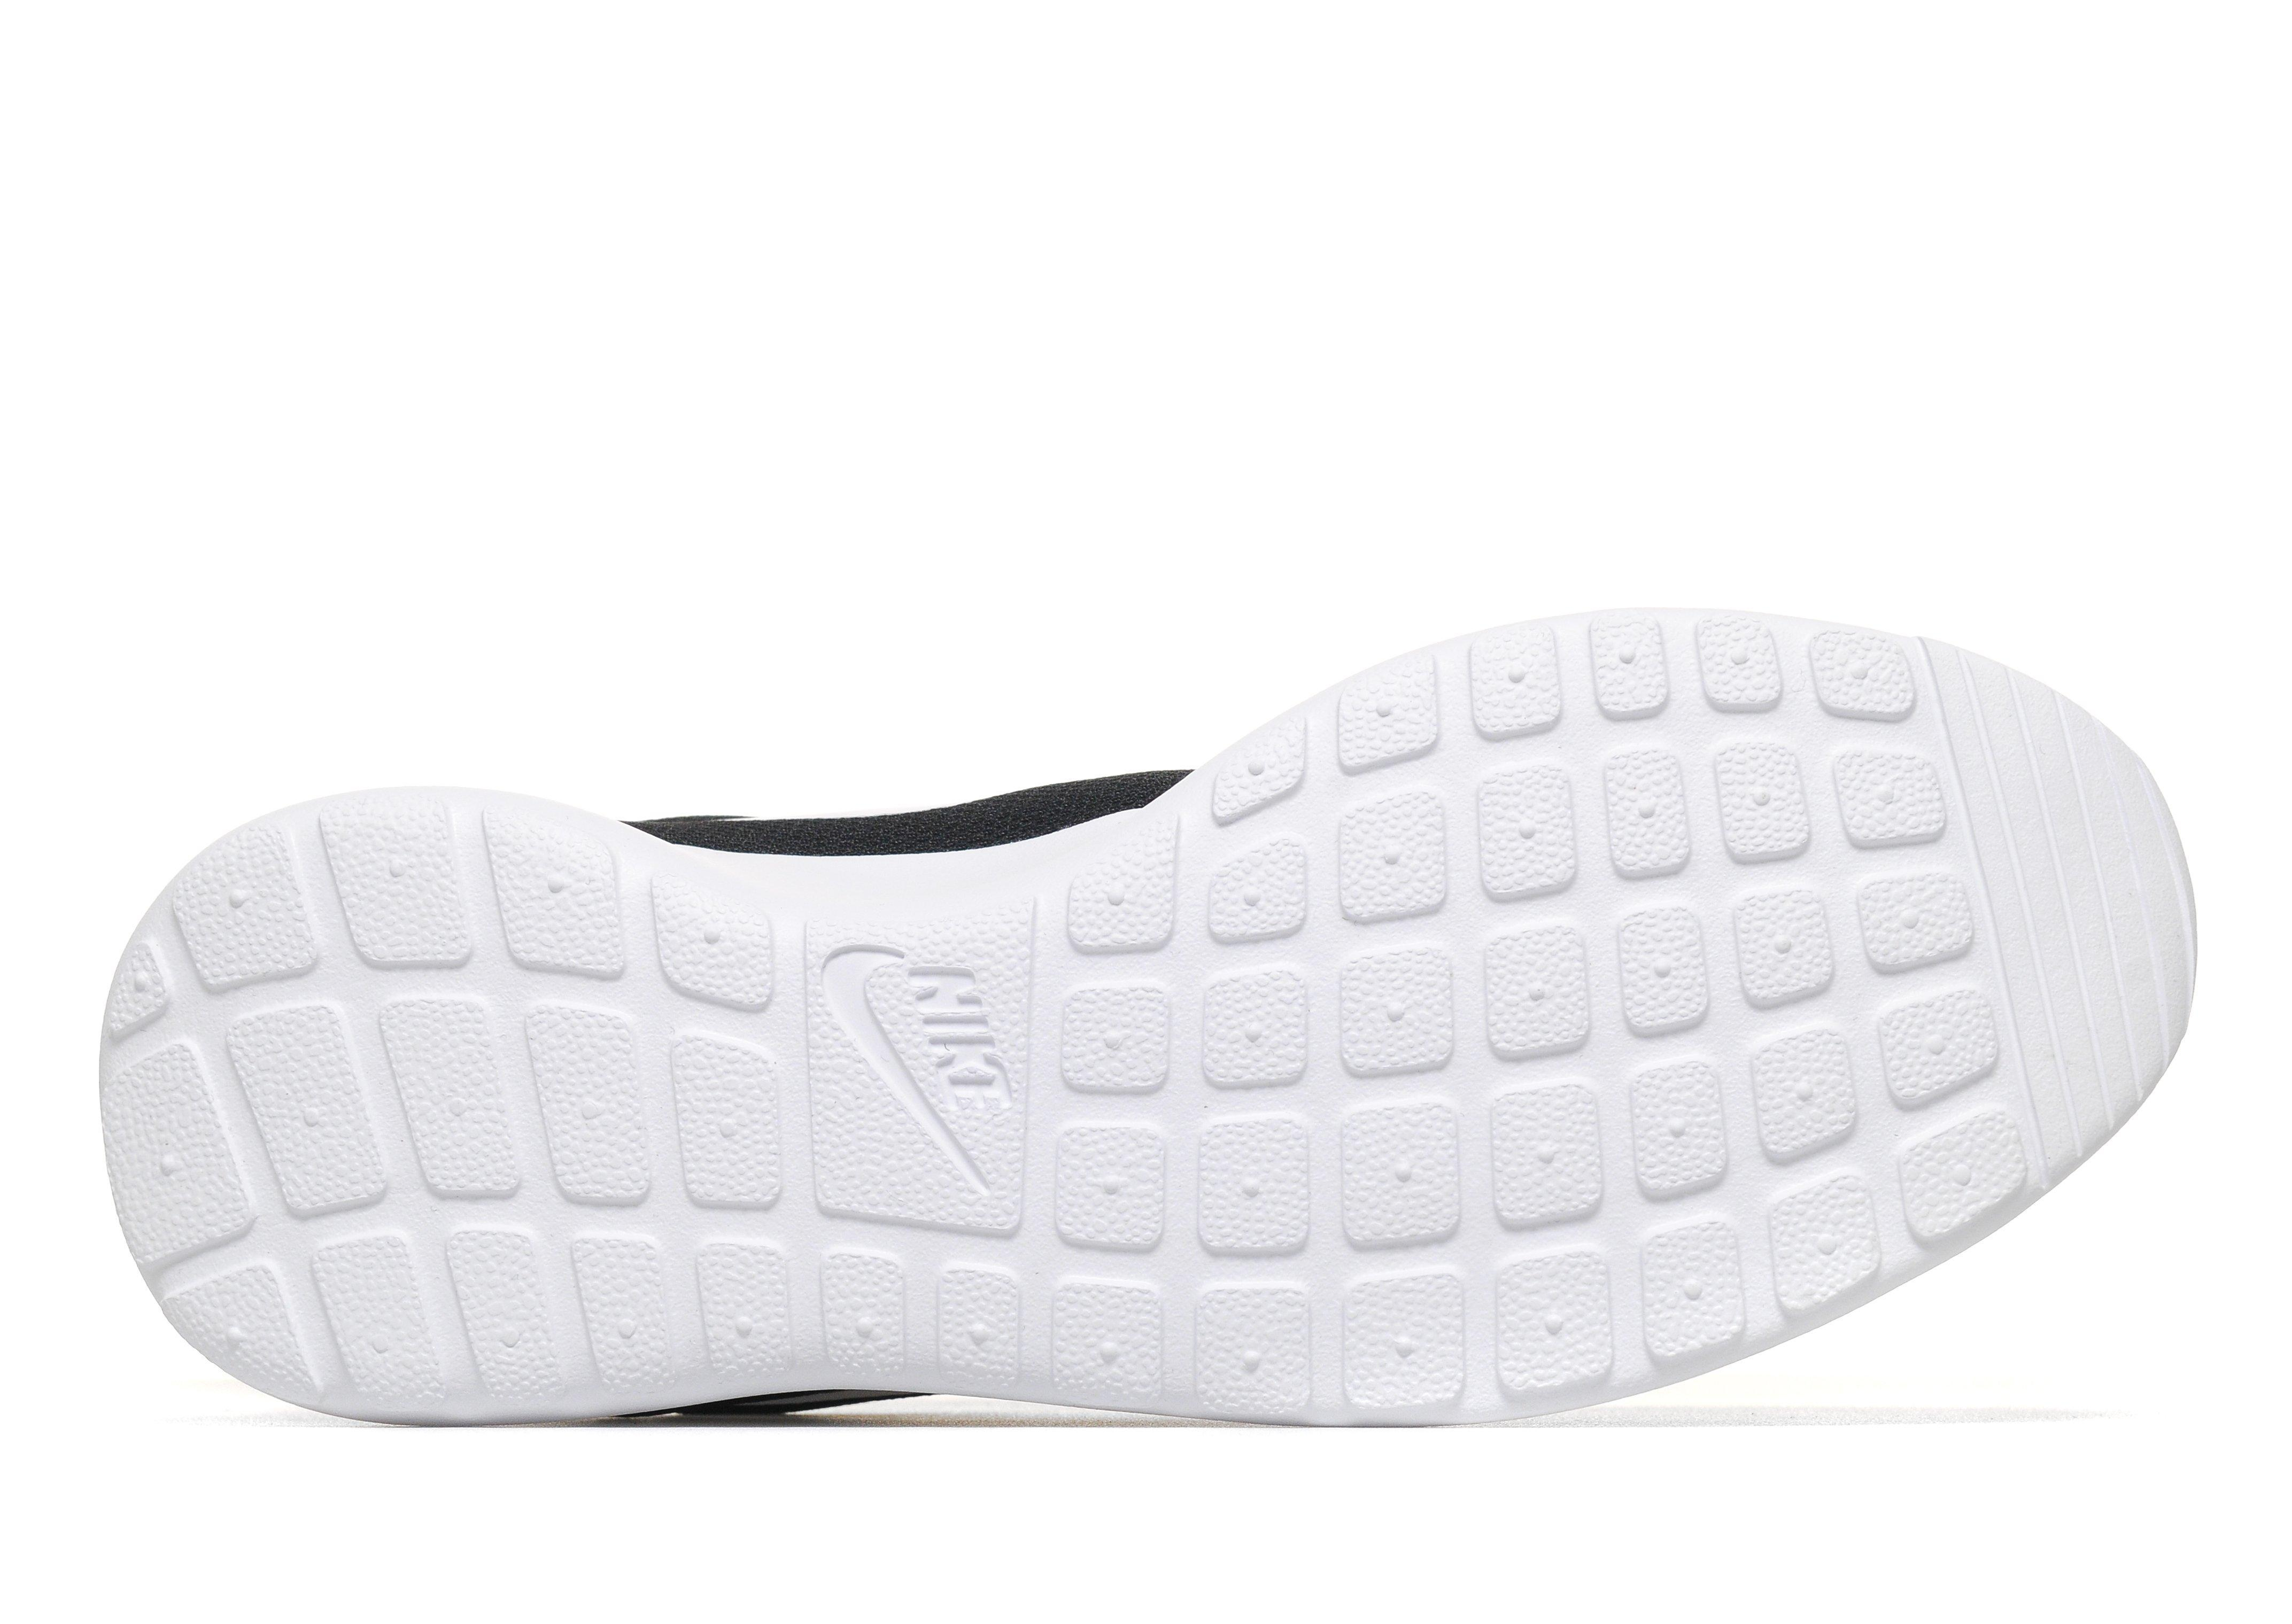 cef388353d nike roshe one jacquard knit summer 2015; gallery. previously sold at jd  sports mens nike roshe